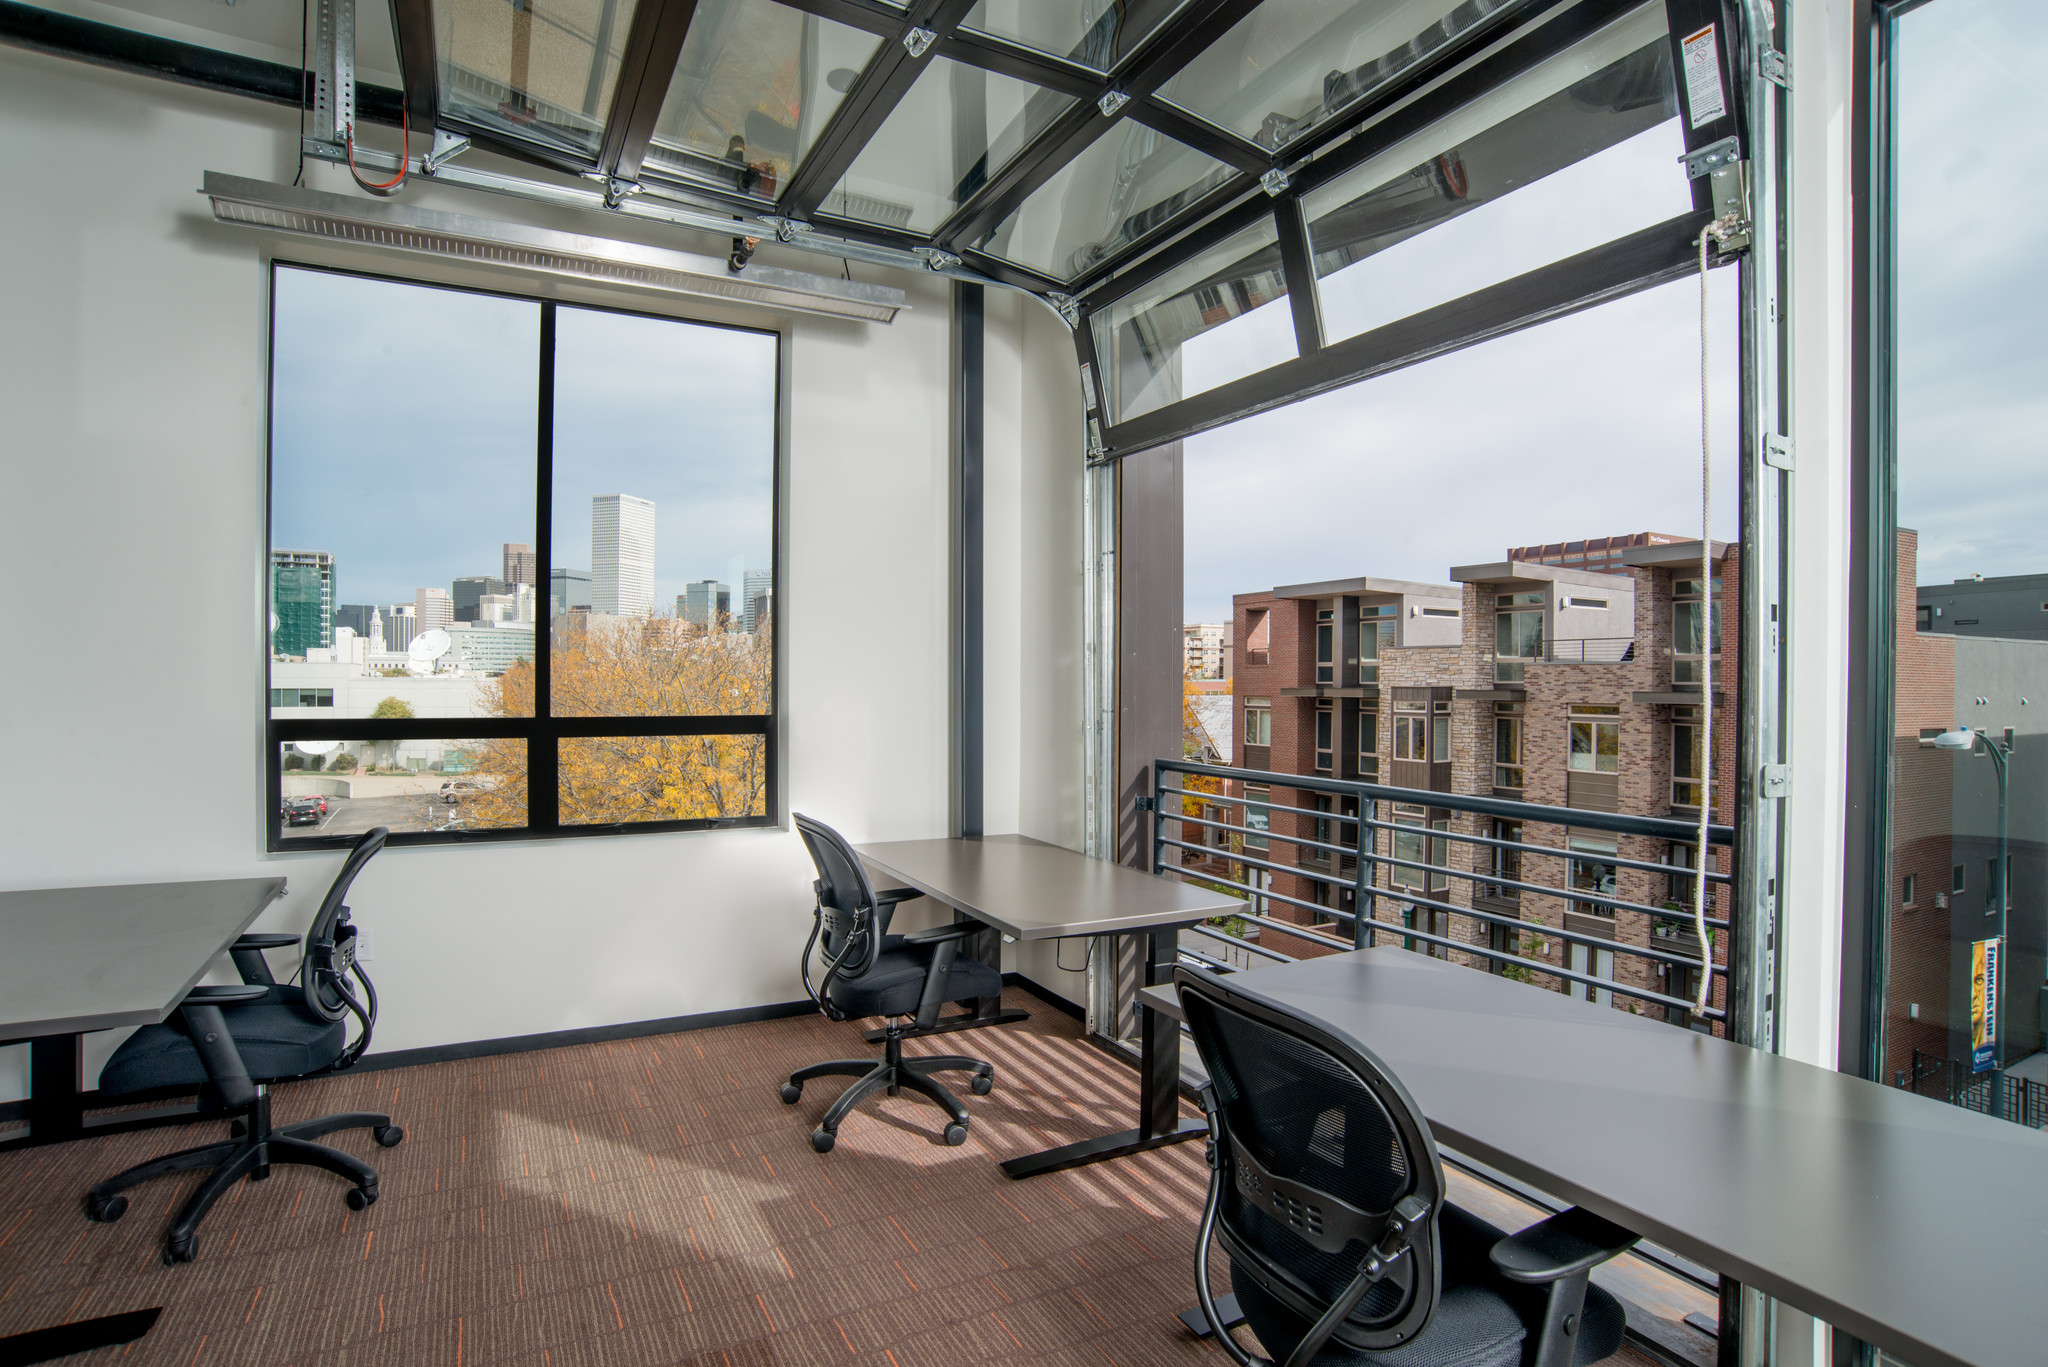 Denver Temporary Private Office or Meeting Room